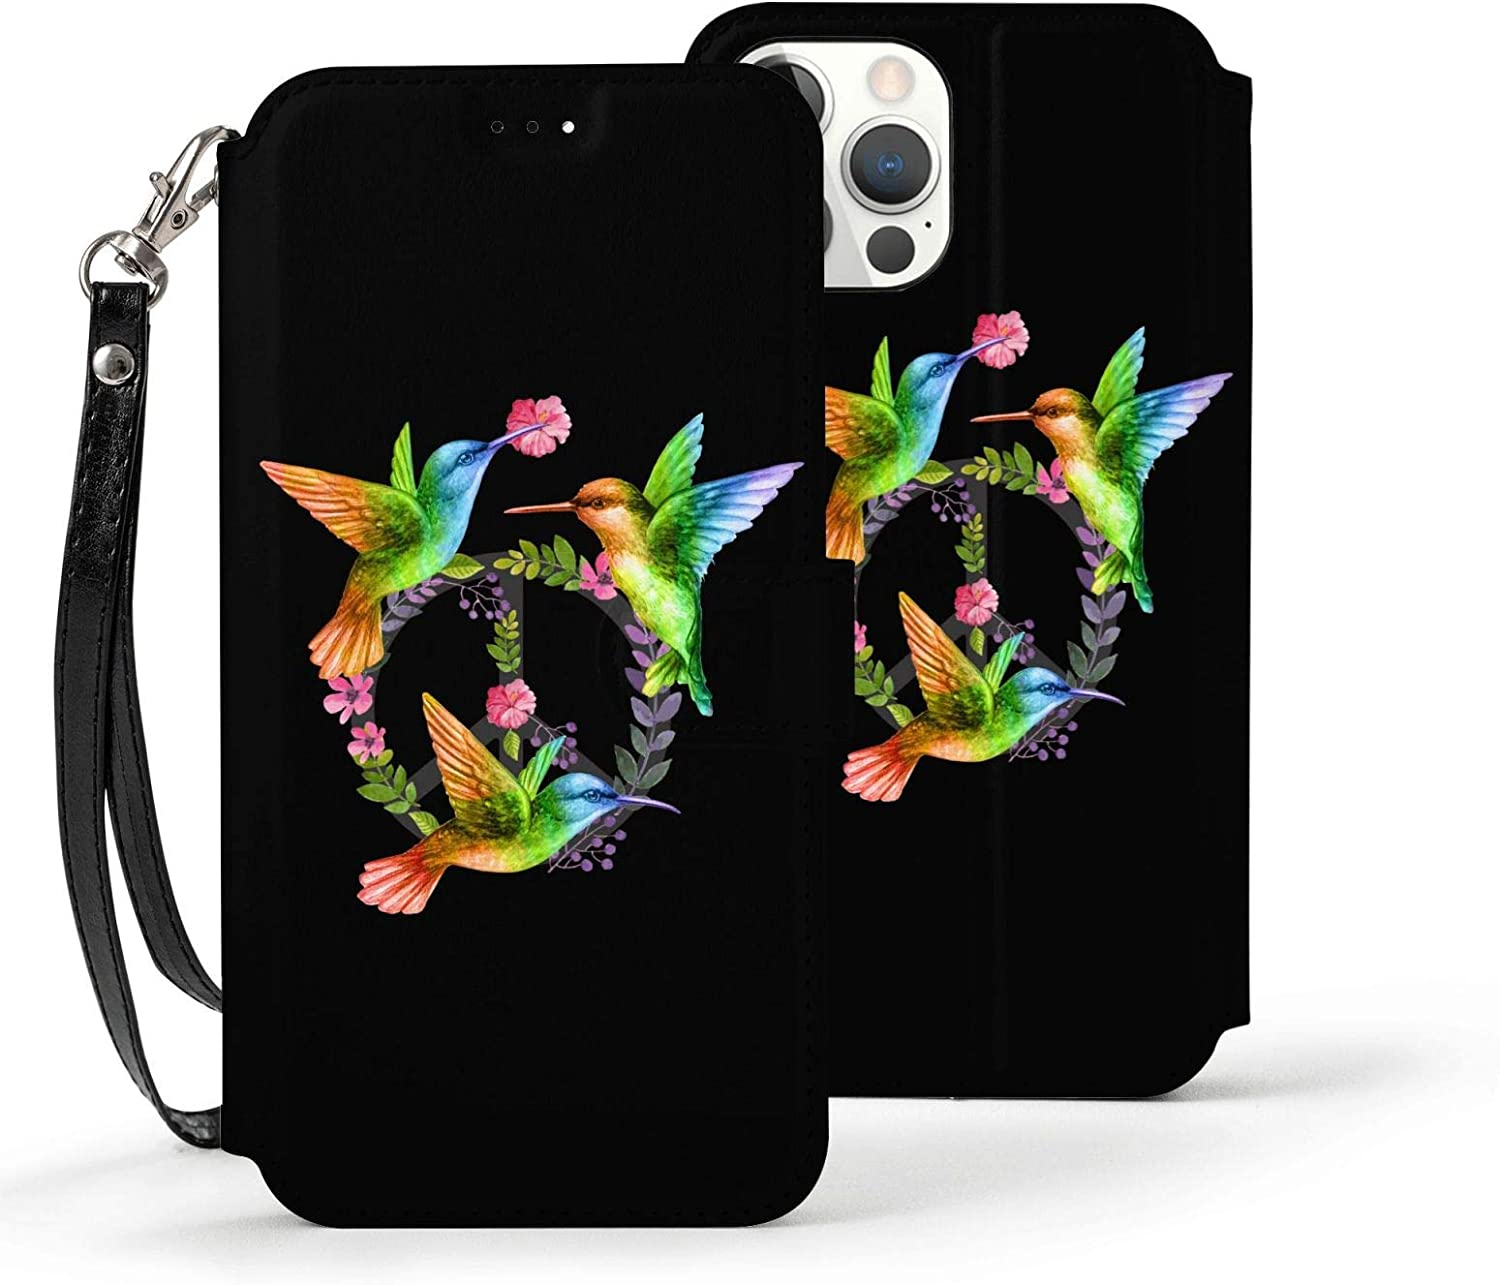 Rainbow Hummingbird Bird Peace Sign Case for iPhone 12 Pro Max for Women Men Leather Wallet Case with Card Holder Wrist Strap